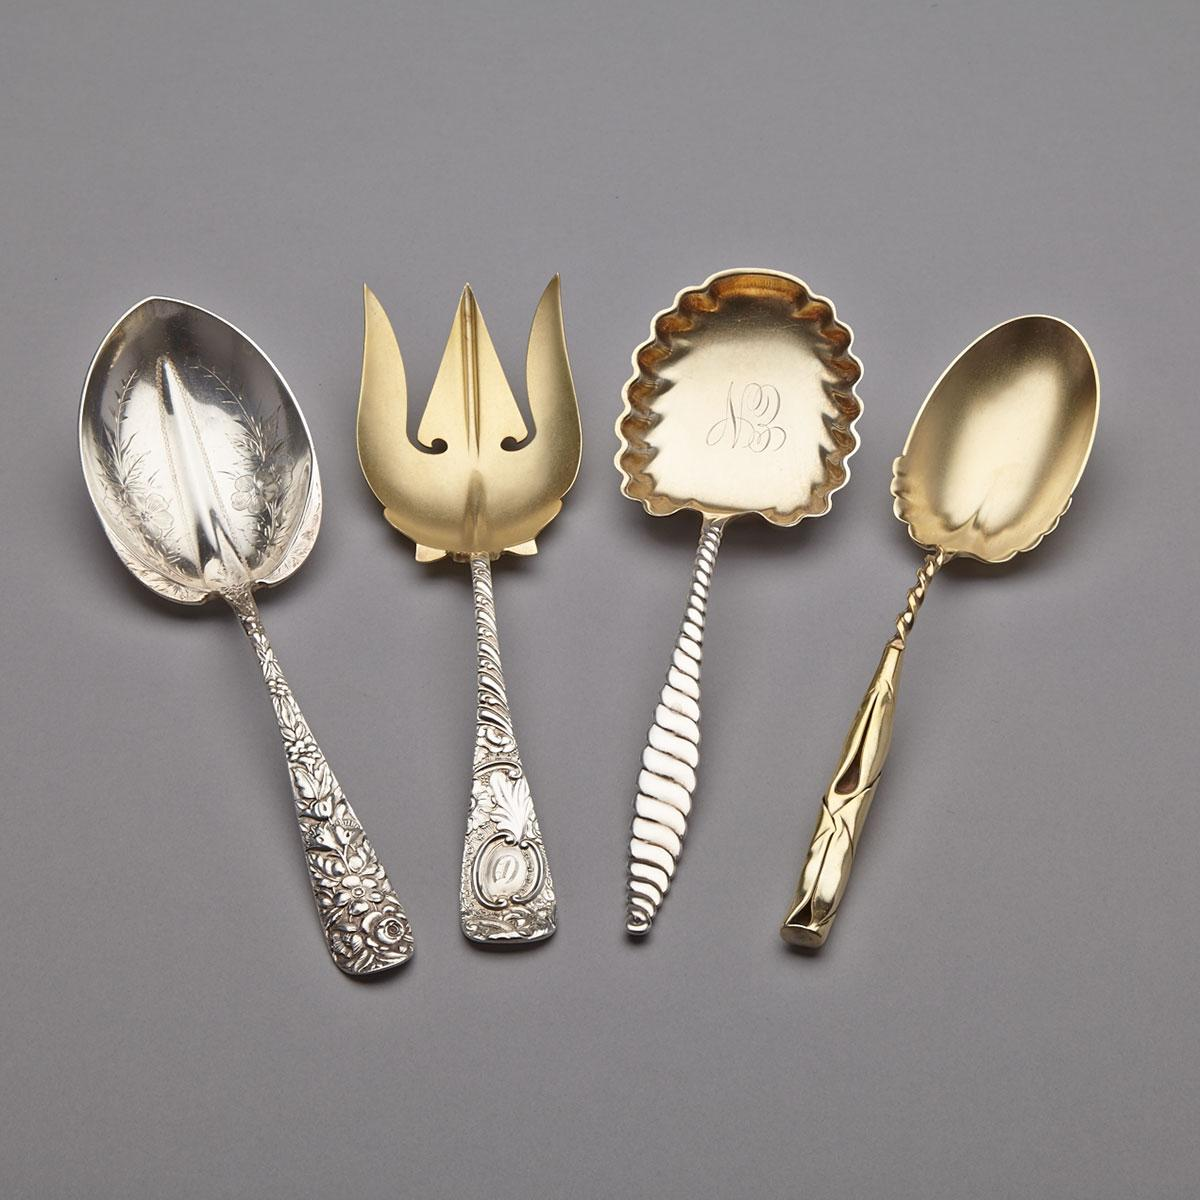 Three American Silver Berry Spoons and a Serving Fork, various makers, c.1900